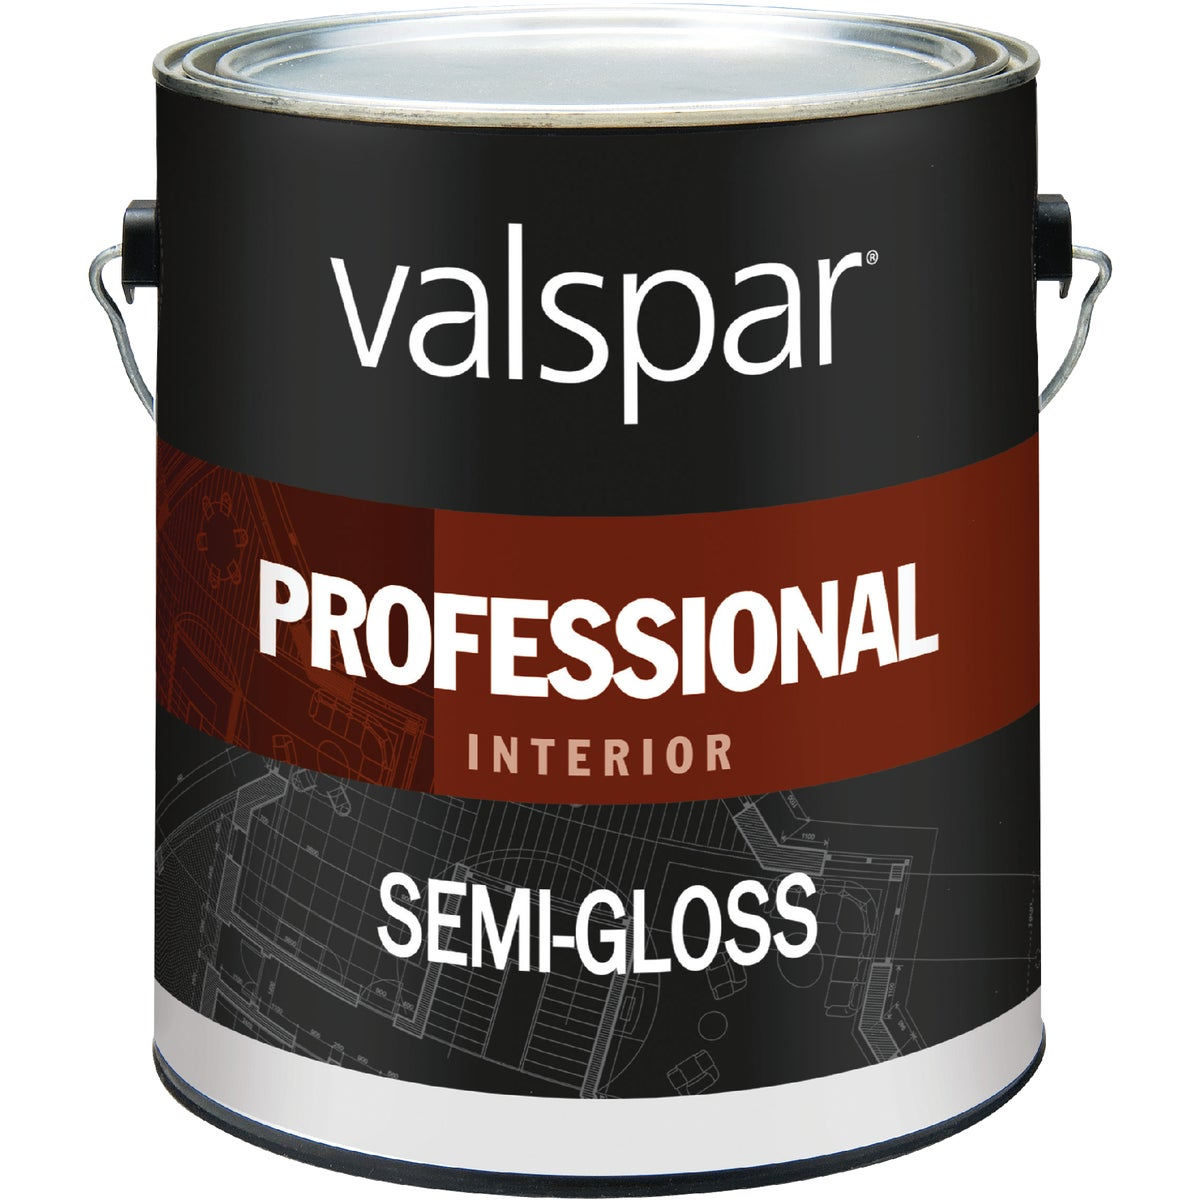 INT S/G MED BASE PAINT - 045.0011912.007 by Valspar Corp